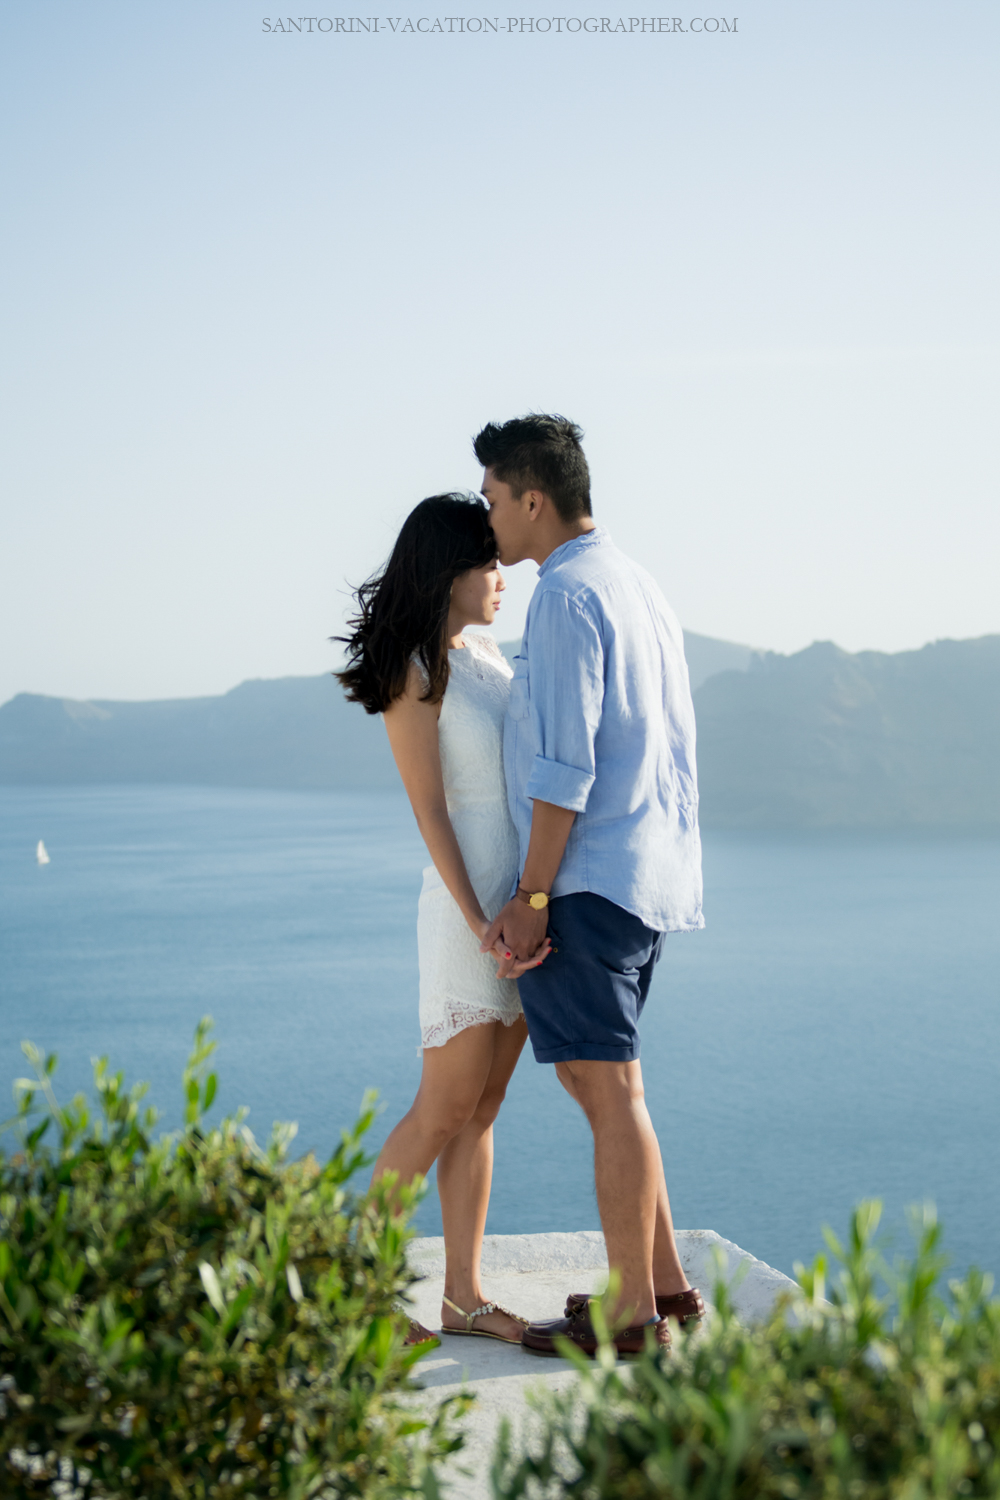 Destination-honeymoon-photo-session-Santorini-003